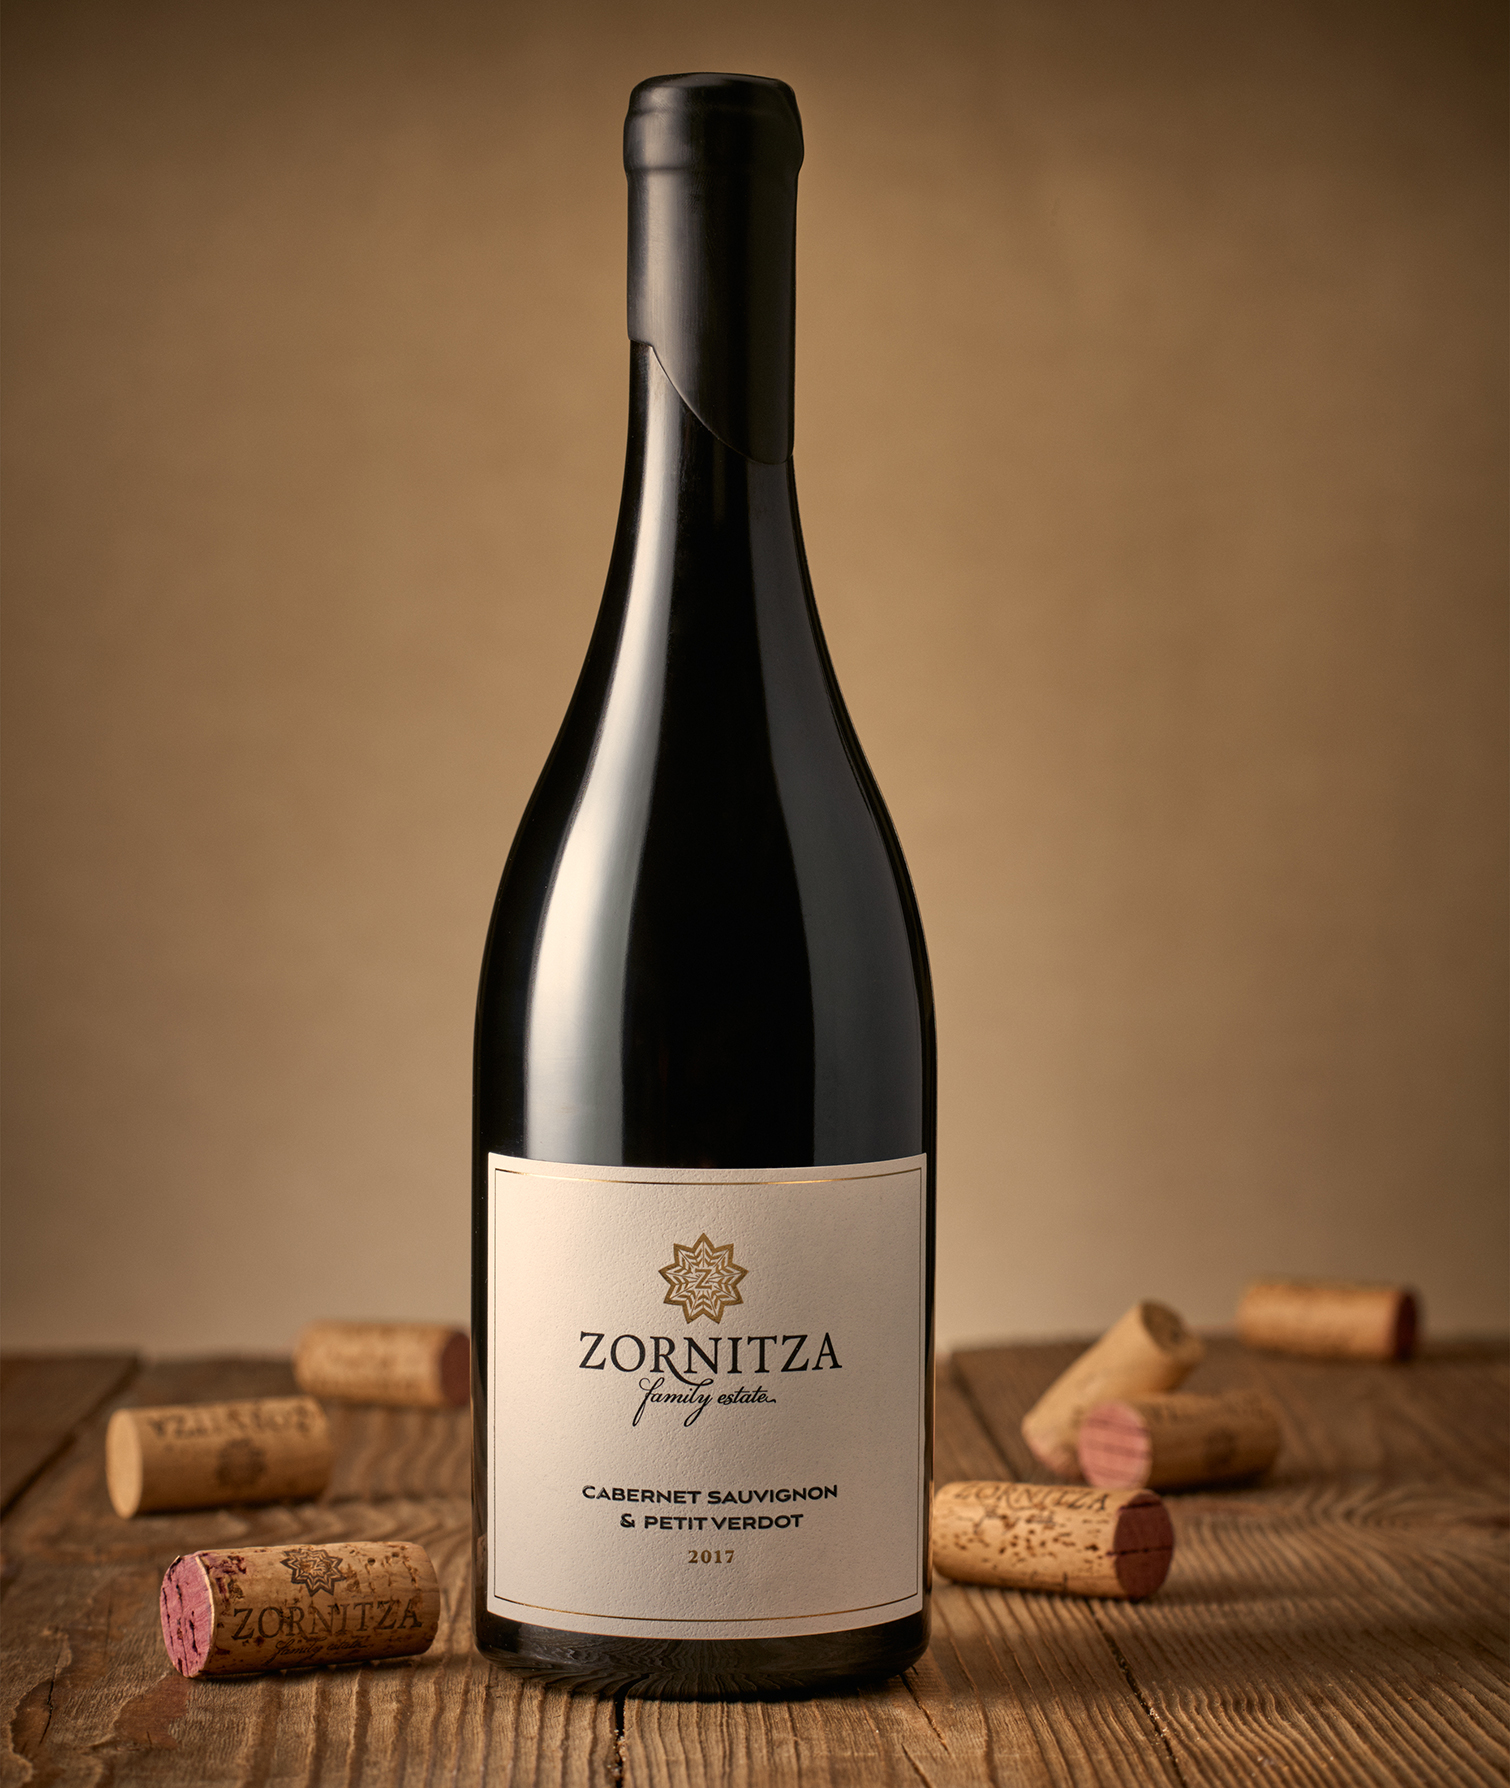 zornitza-wine-vertical-6.jpg